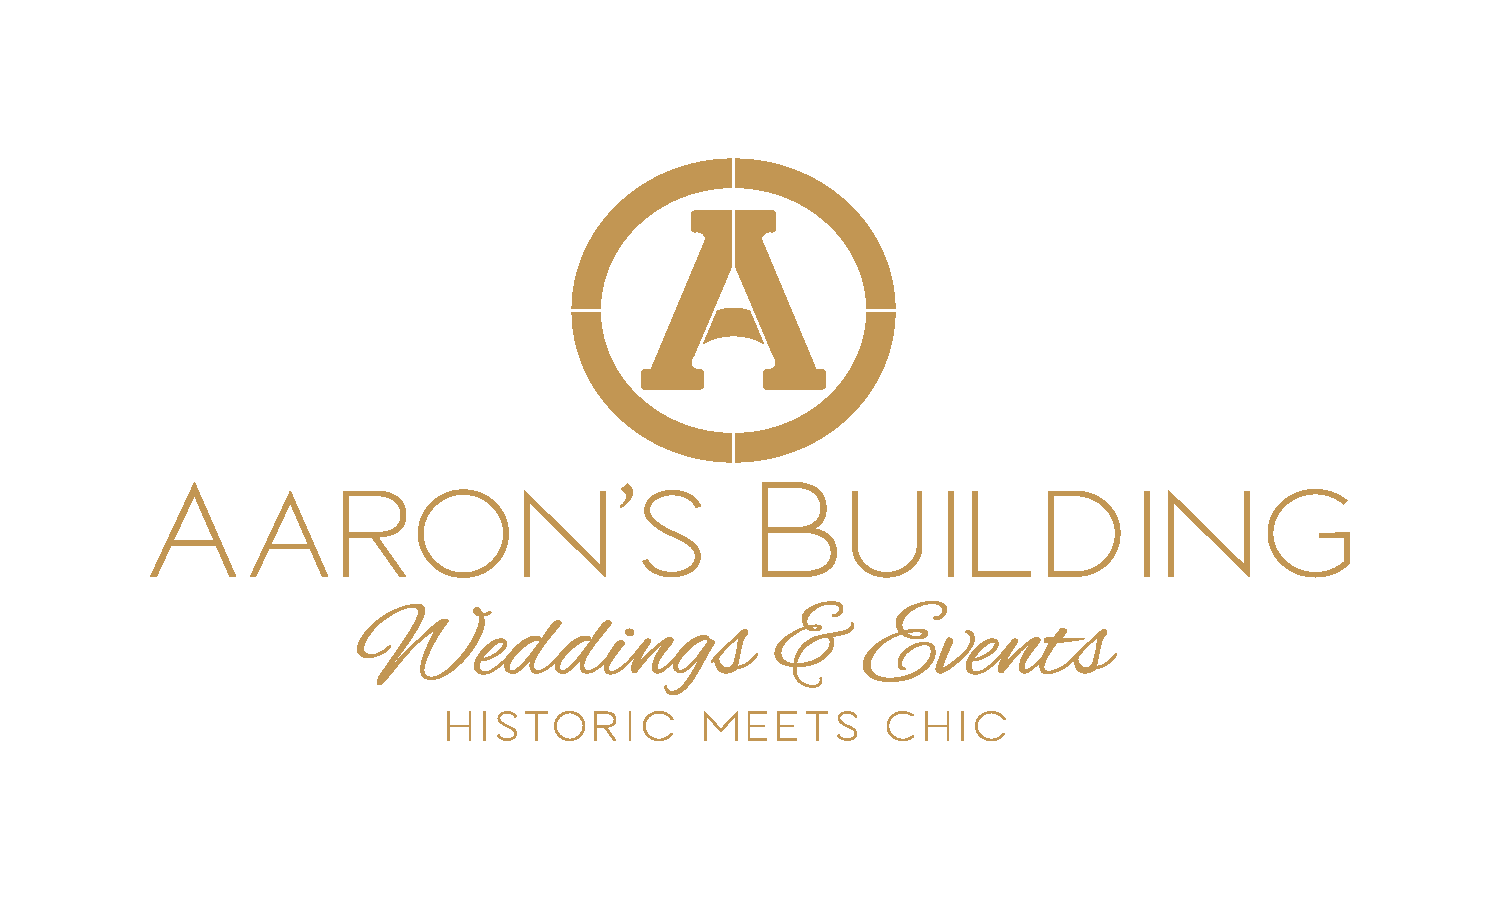 The Aaron's Building Logo